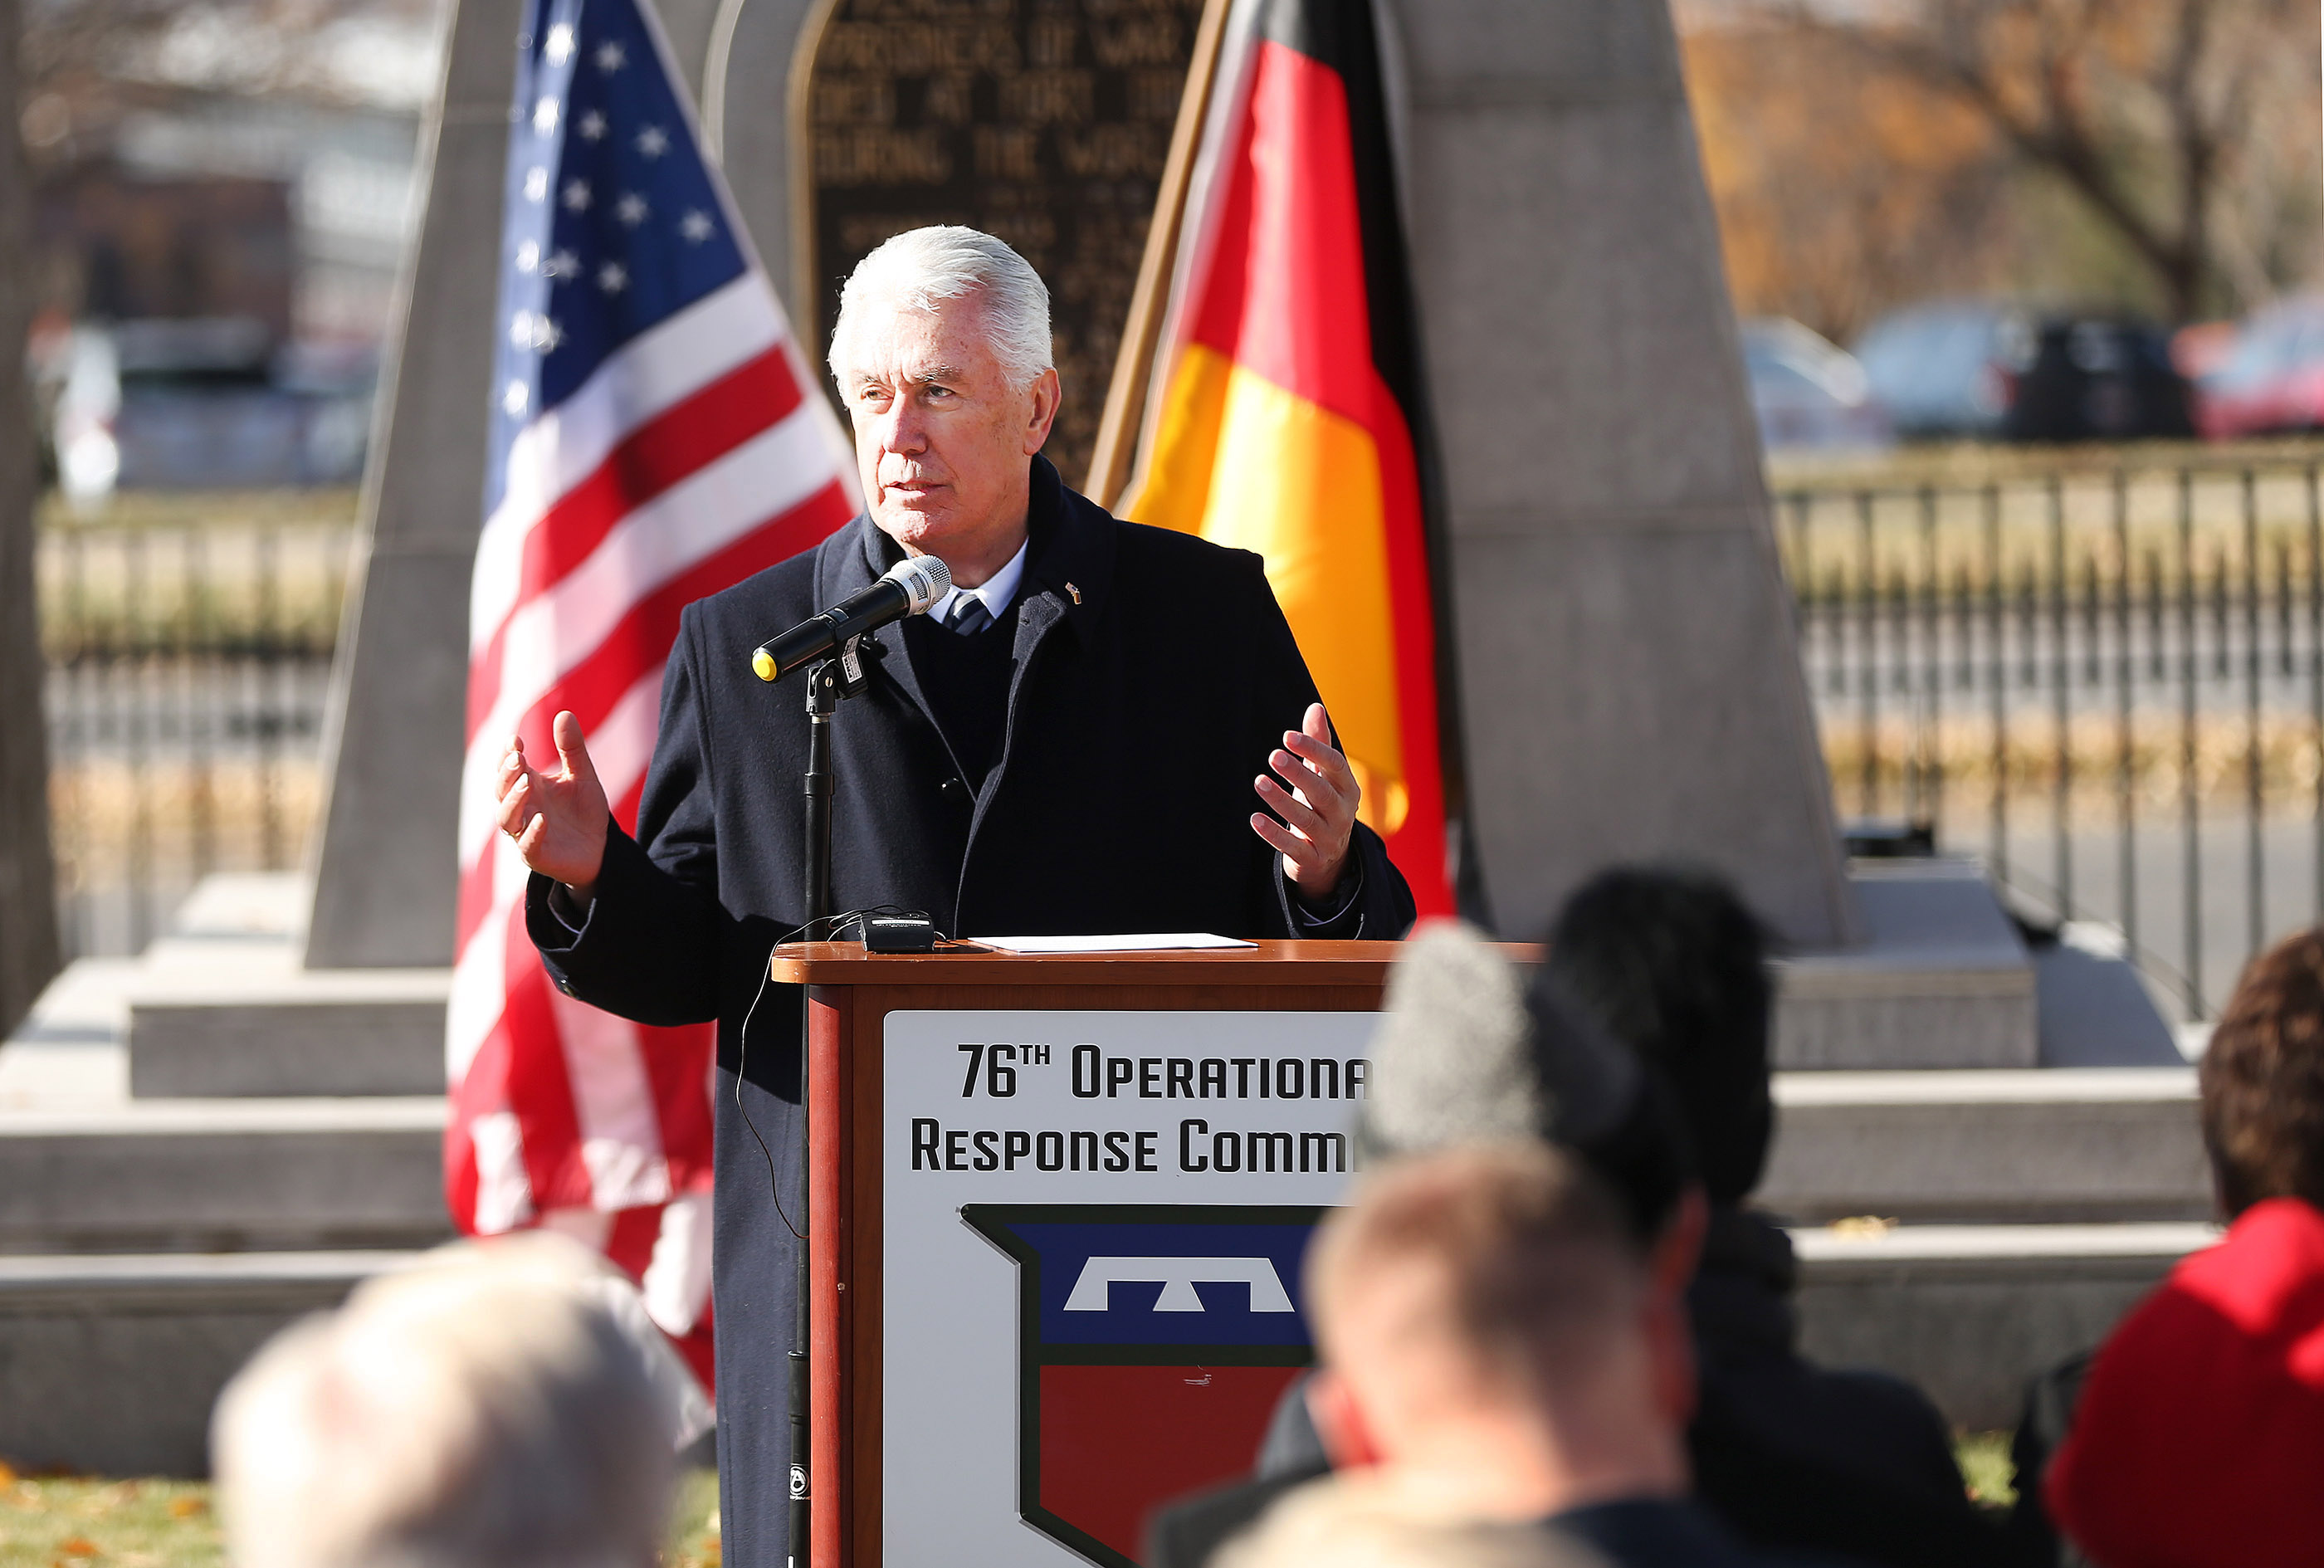 Elder Dieter F. Uchtdorf of The Church of Jesus Christ of Latter-day Saints' Quorum of the Twelve Apostles, speaks during the German Day of Remembrance (Volkstrauertag) at Fort Douglas Military Cemetery in Salt Lake City on Sunday, Nov. 18, 2018.